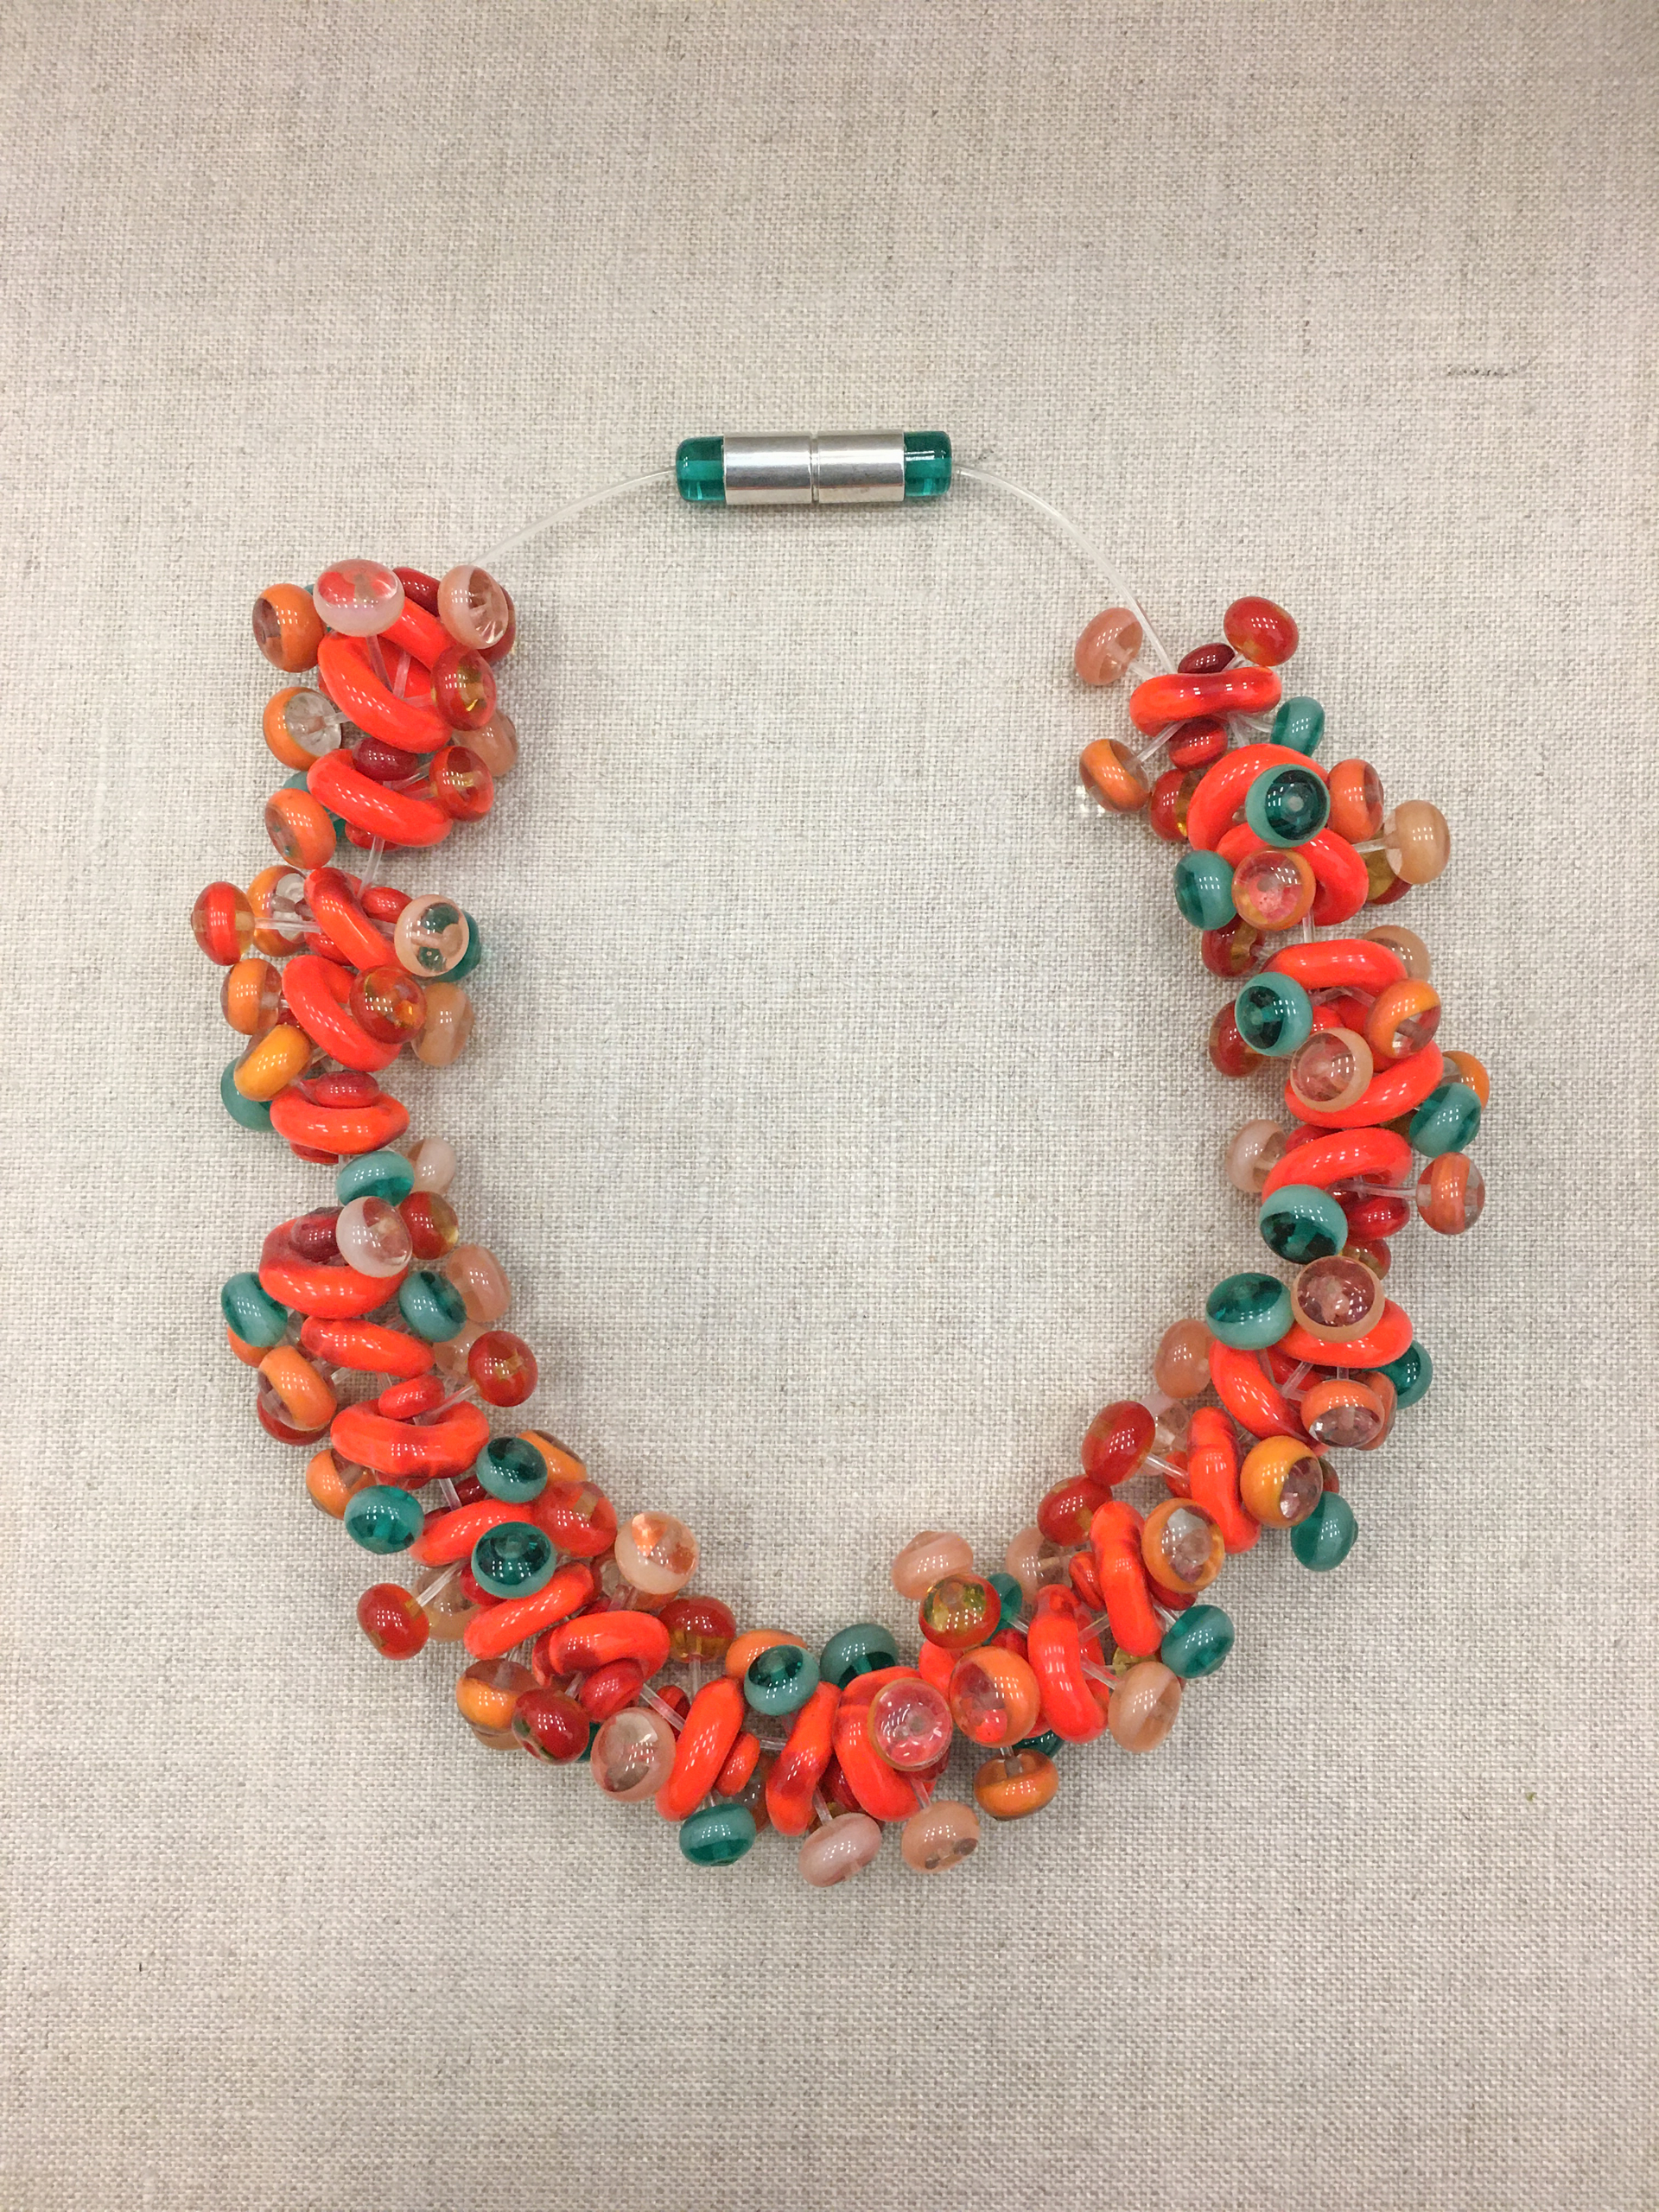 Clasp Necklace No. 2 by Jette Vogt